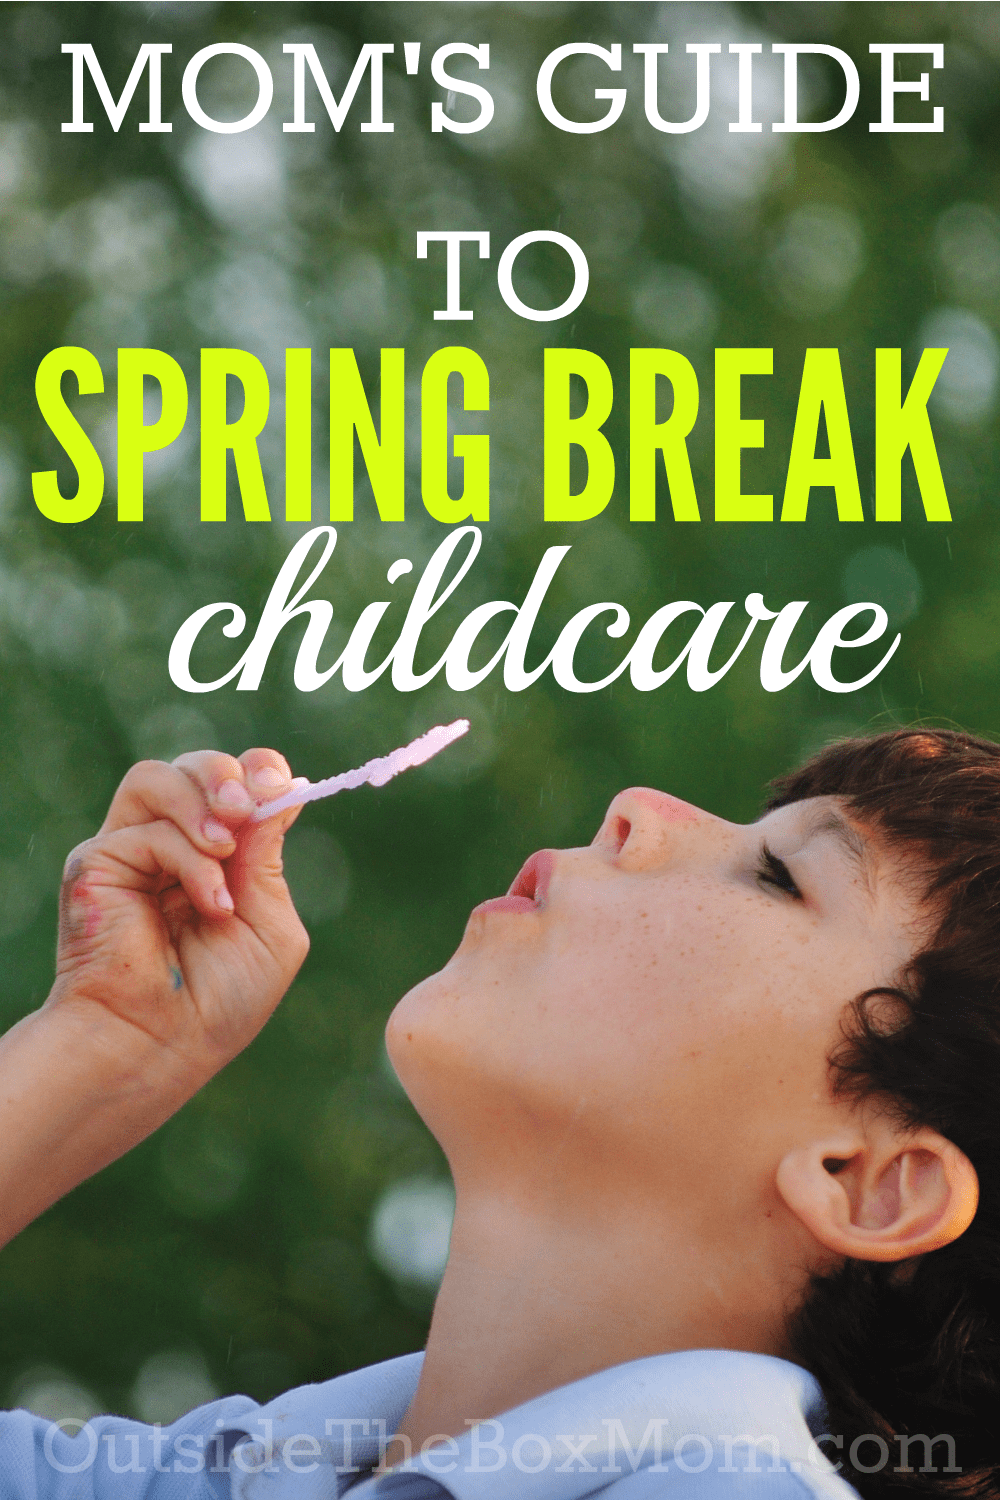 Are you facing the same challenge lots of working mothers are facing during the next few weeks: what will I do for Spring break childcare AND how do I keep my child entertained?